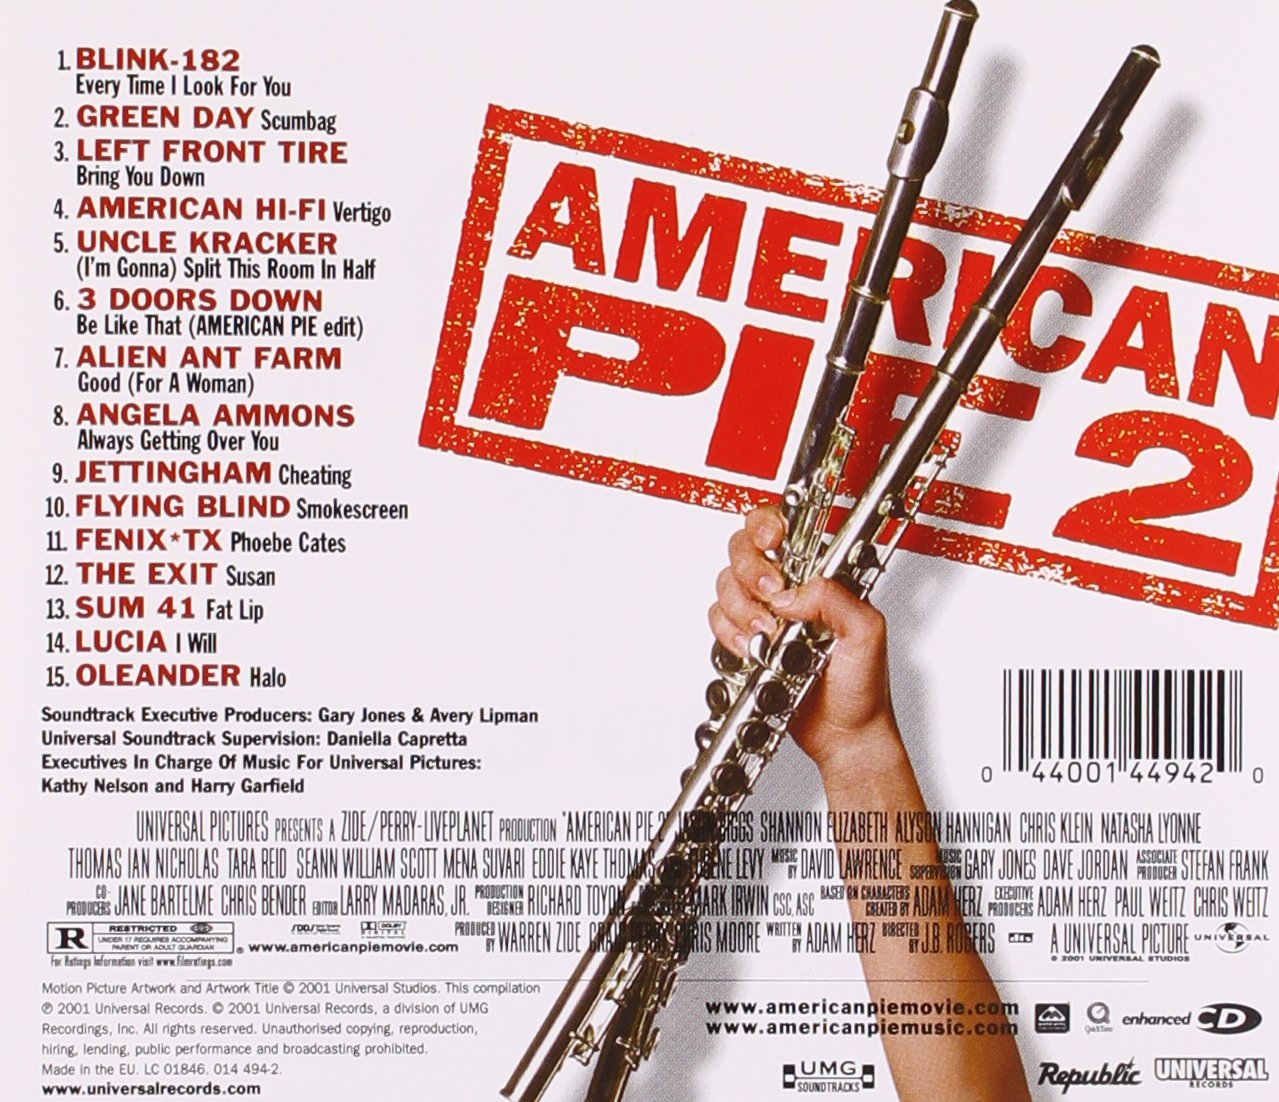 Film american pie naked mile soundtracks security